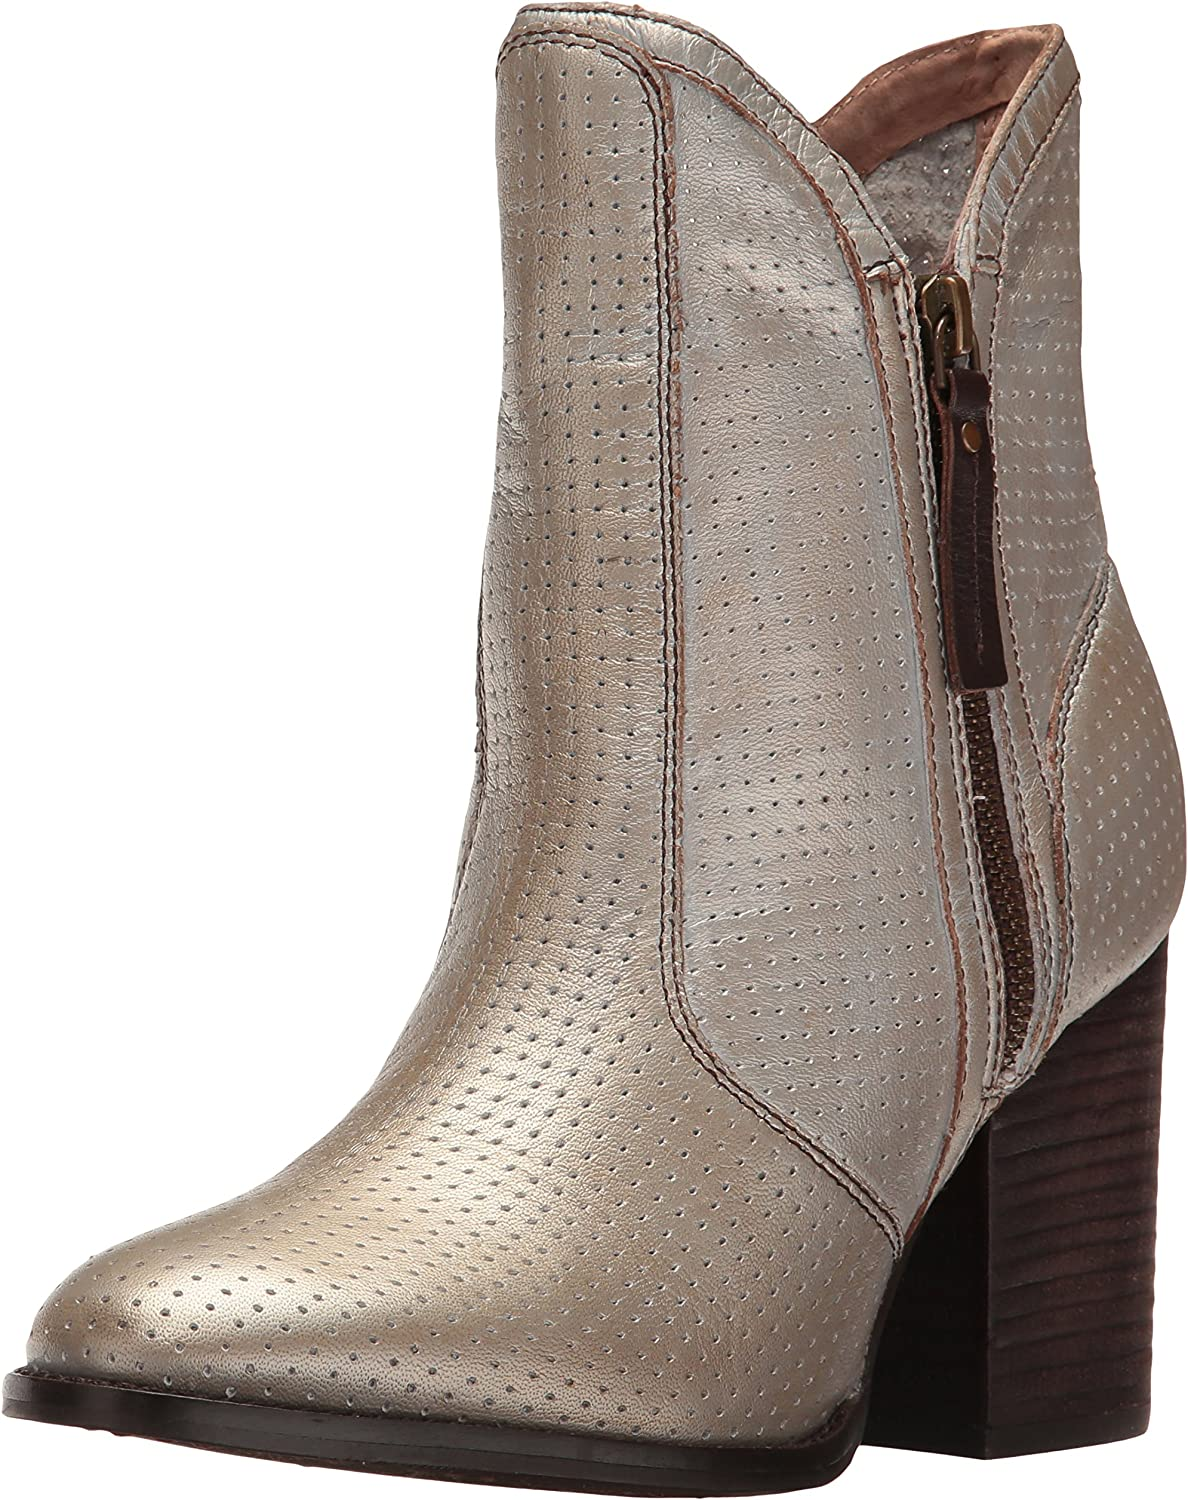 Seychelles Womens Around The World Ankle Bootie